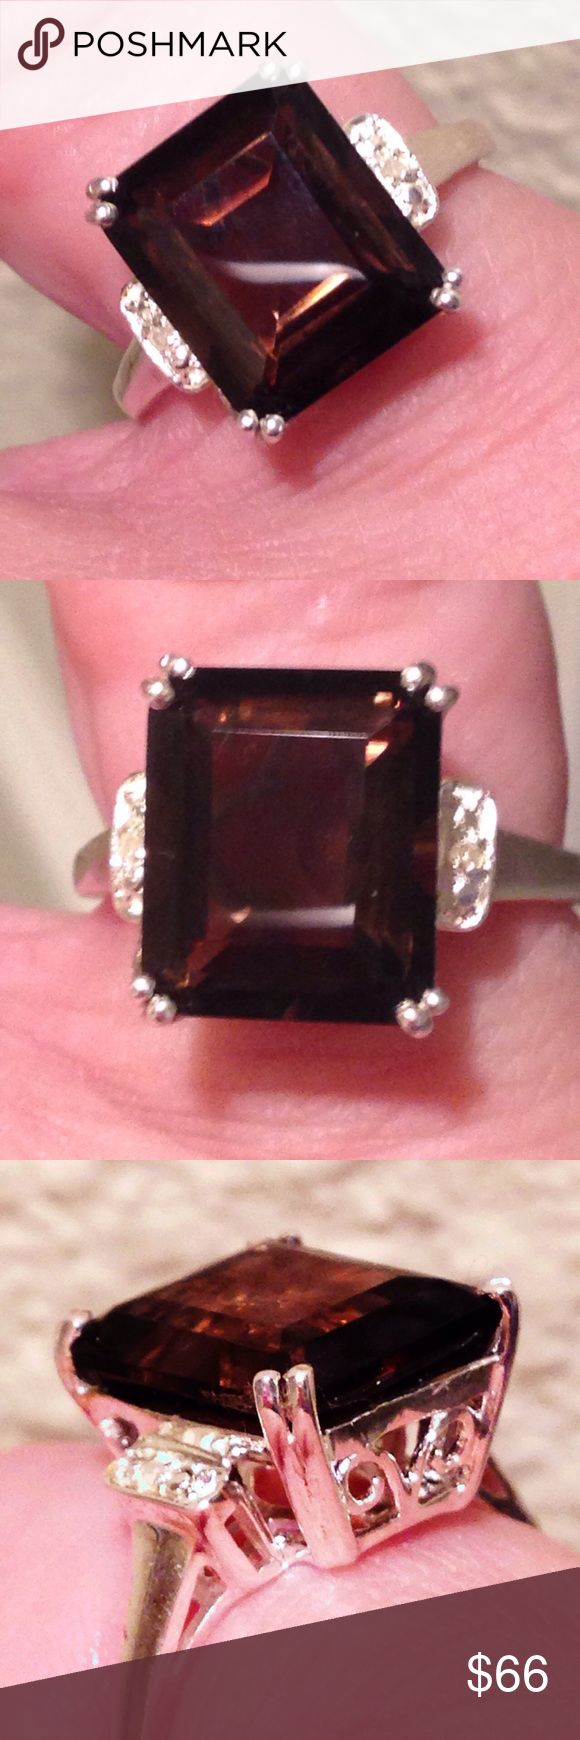 🔥Nwt! Genuine 6ct  Smoky Quartz + Diamond  Ring 🔥 Size 6.5 - Brand New! TAG ON! MSRP:$219.99 !!! Genuine BRAZILiAN SMOKY QUARTZ (6.00 carat (fancy faceted Octagon ) + 2 Genuine White DiAMOND .925 Sterling Silver Ring with ornate basket setting . ✔️🎁earns a FREE BRAND NEW Mystery thank you  GIFT! 🎁✔️top rated trusted seller✔️ships quick✔️comes in a new jewelry gift box ✔️listed deeply discounted off the $219.99 MSRP! Further 10% discount by bundling only manufacturer (usa) Jewelry Rings